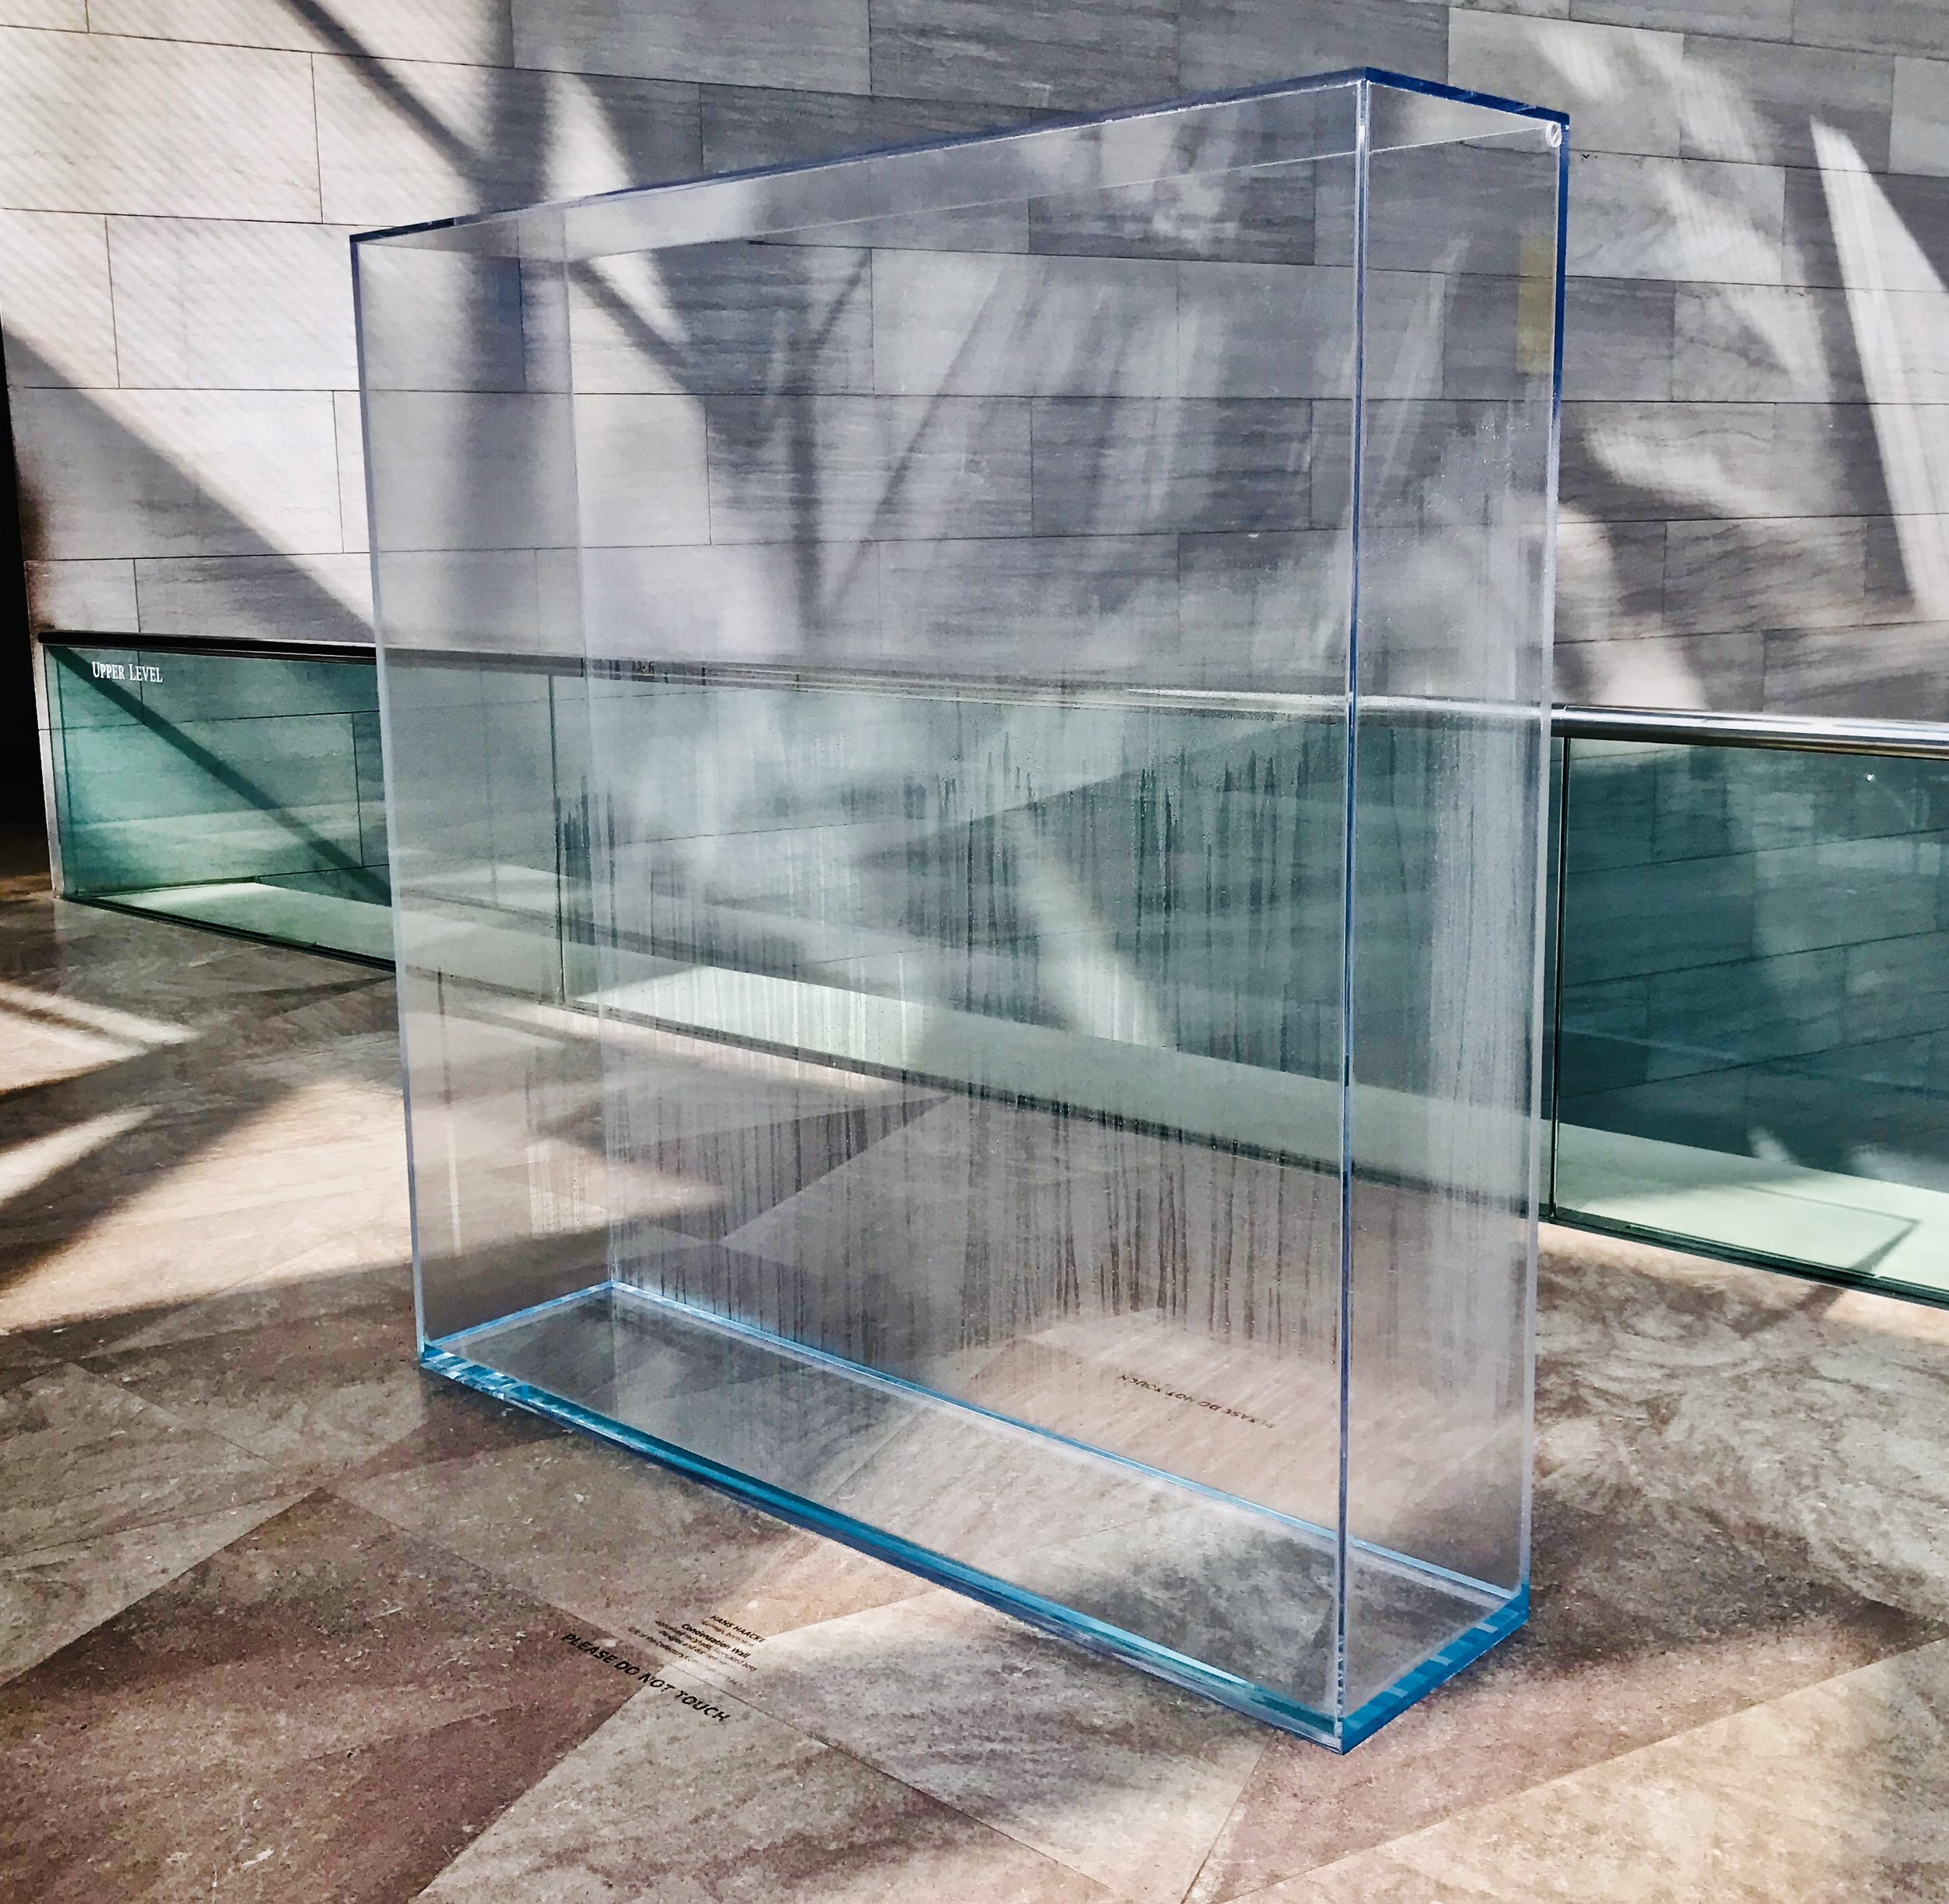 Hans Haacke,  Condensation Wall,  conceived 1963/1966, fabricated 2016, Plexiglas and distilled water, overall: 177.8 × 177.8 × 40.6 cm (70 × 70 × 16 in.)National Gallery of Art, Gift of the Collectors Committee, 2013.44.1. Photograph by Emily Lanza.